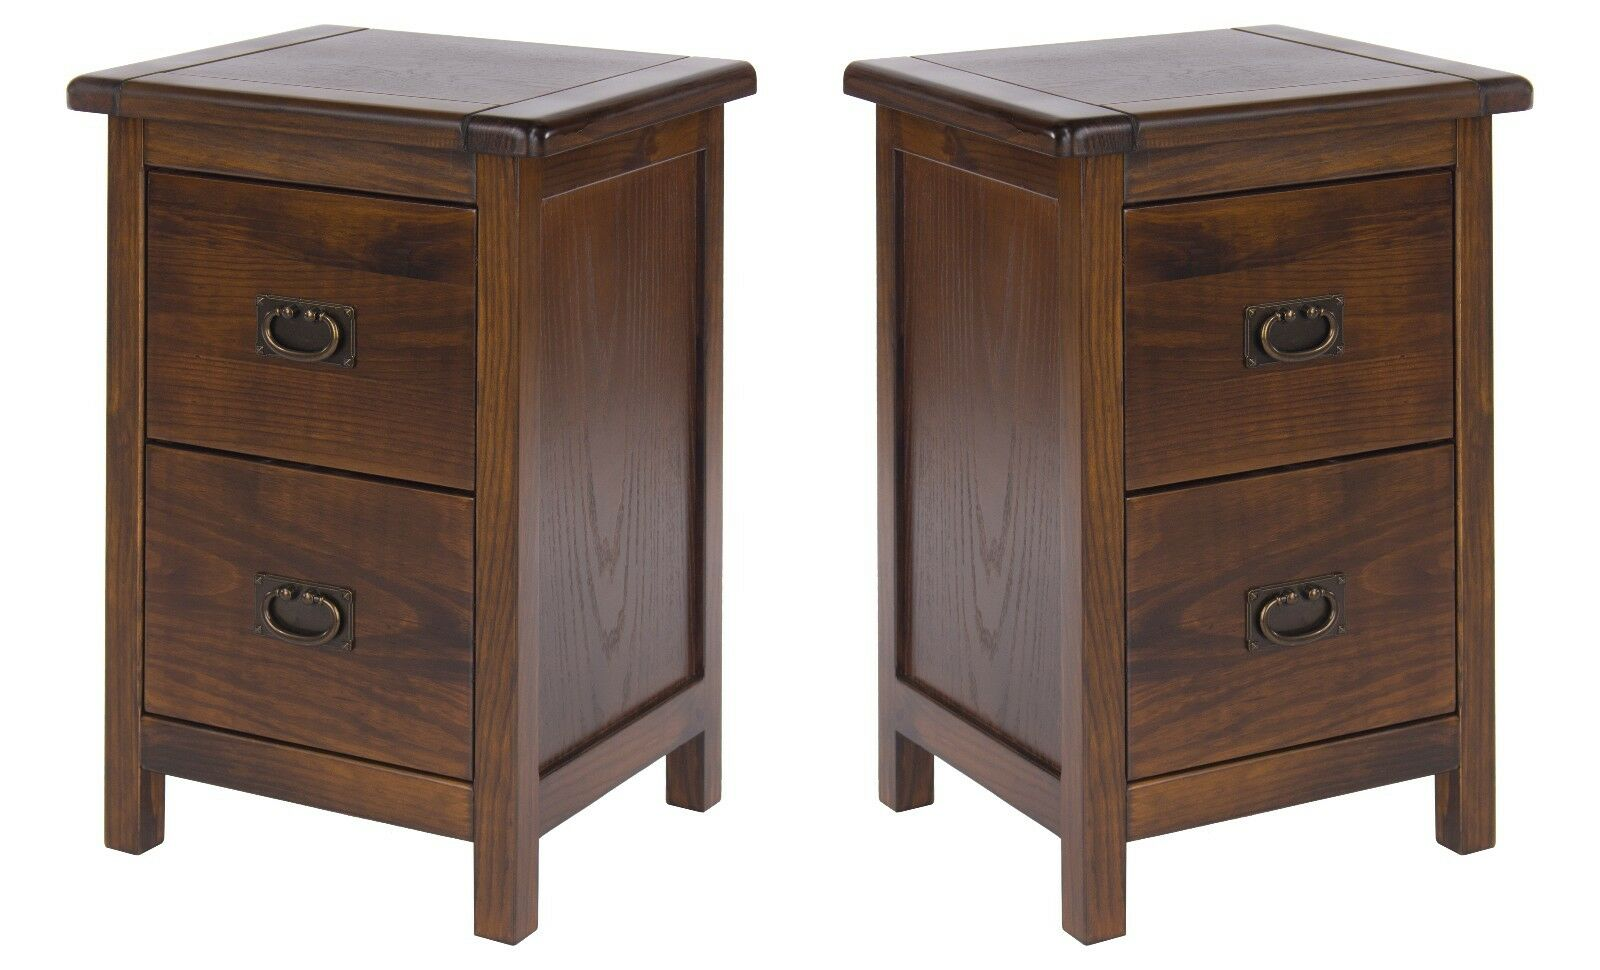 Pair Large Bedside Cabinet Table Dark Wood Baltia Solid Bedroom Furniture